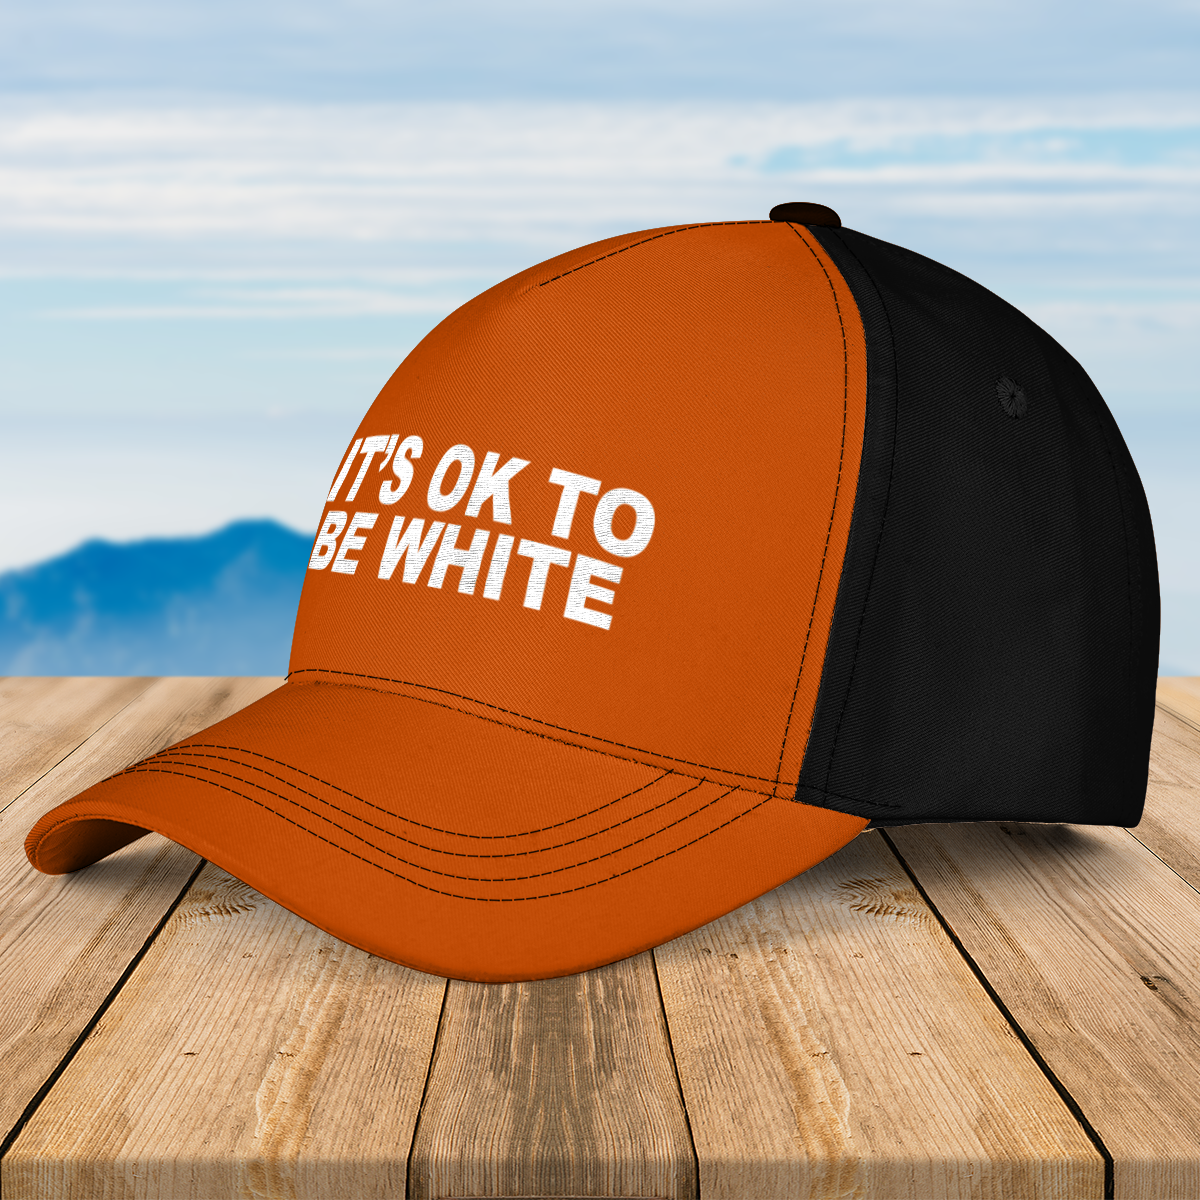 Its ok to be white cap